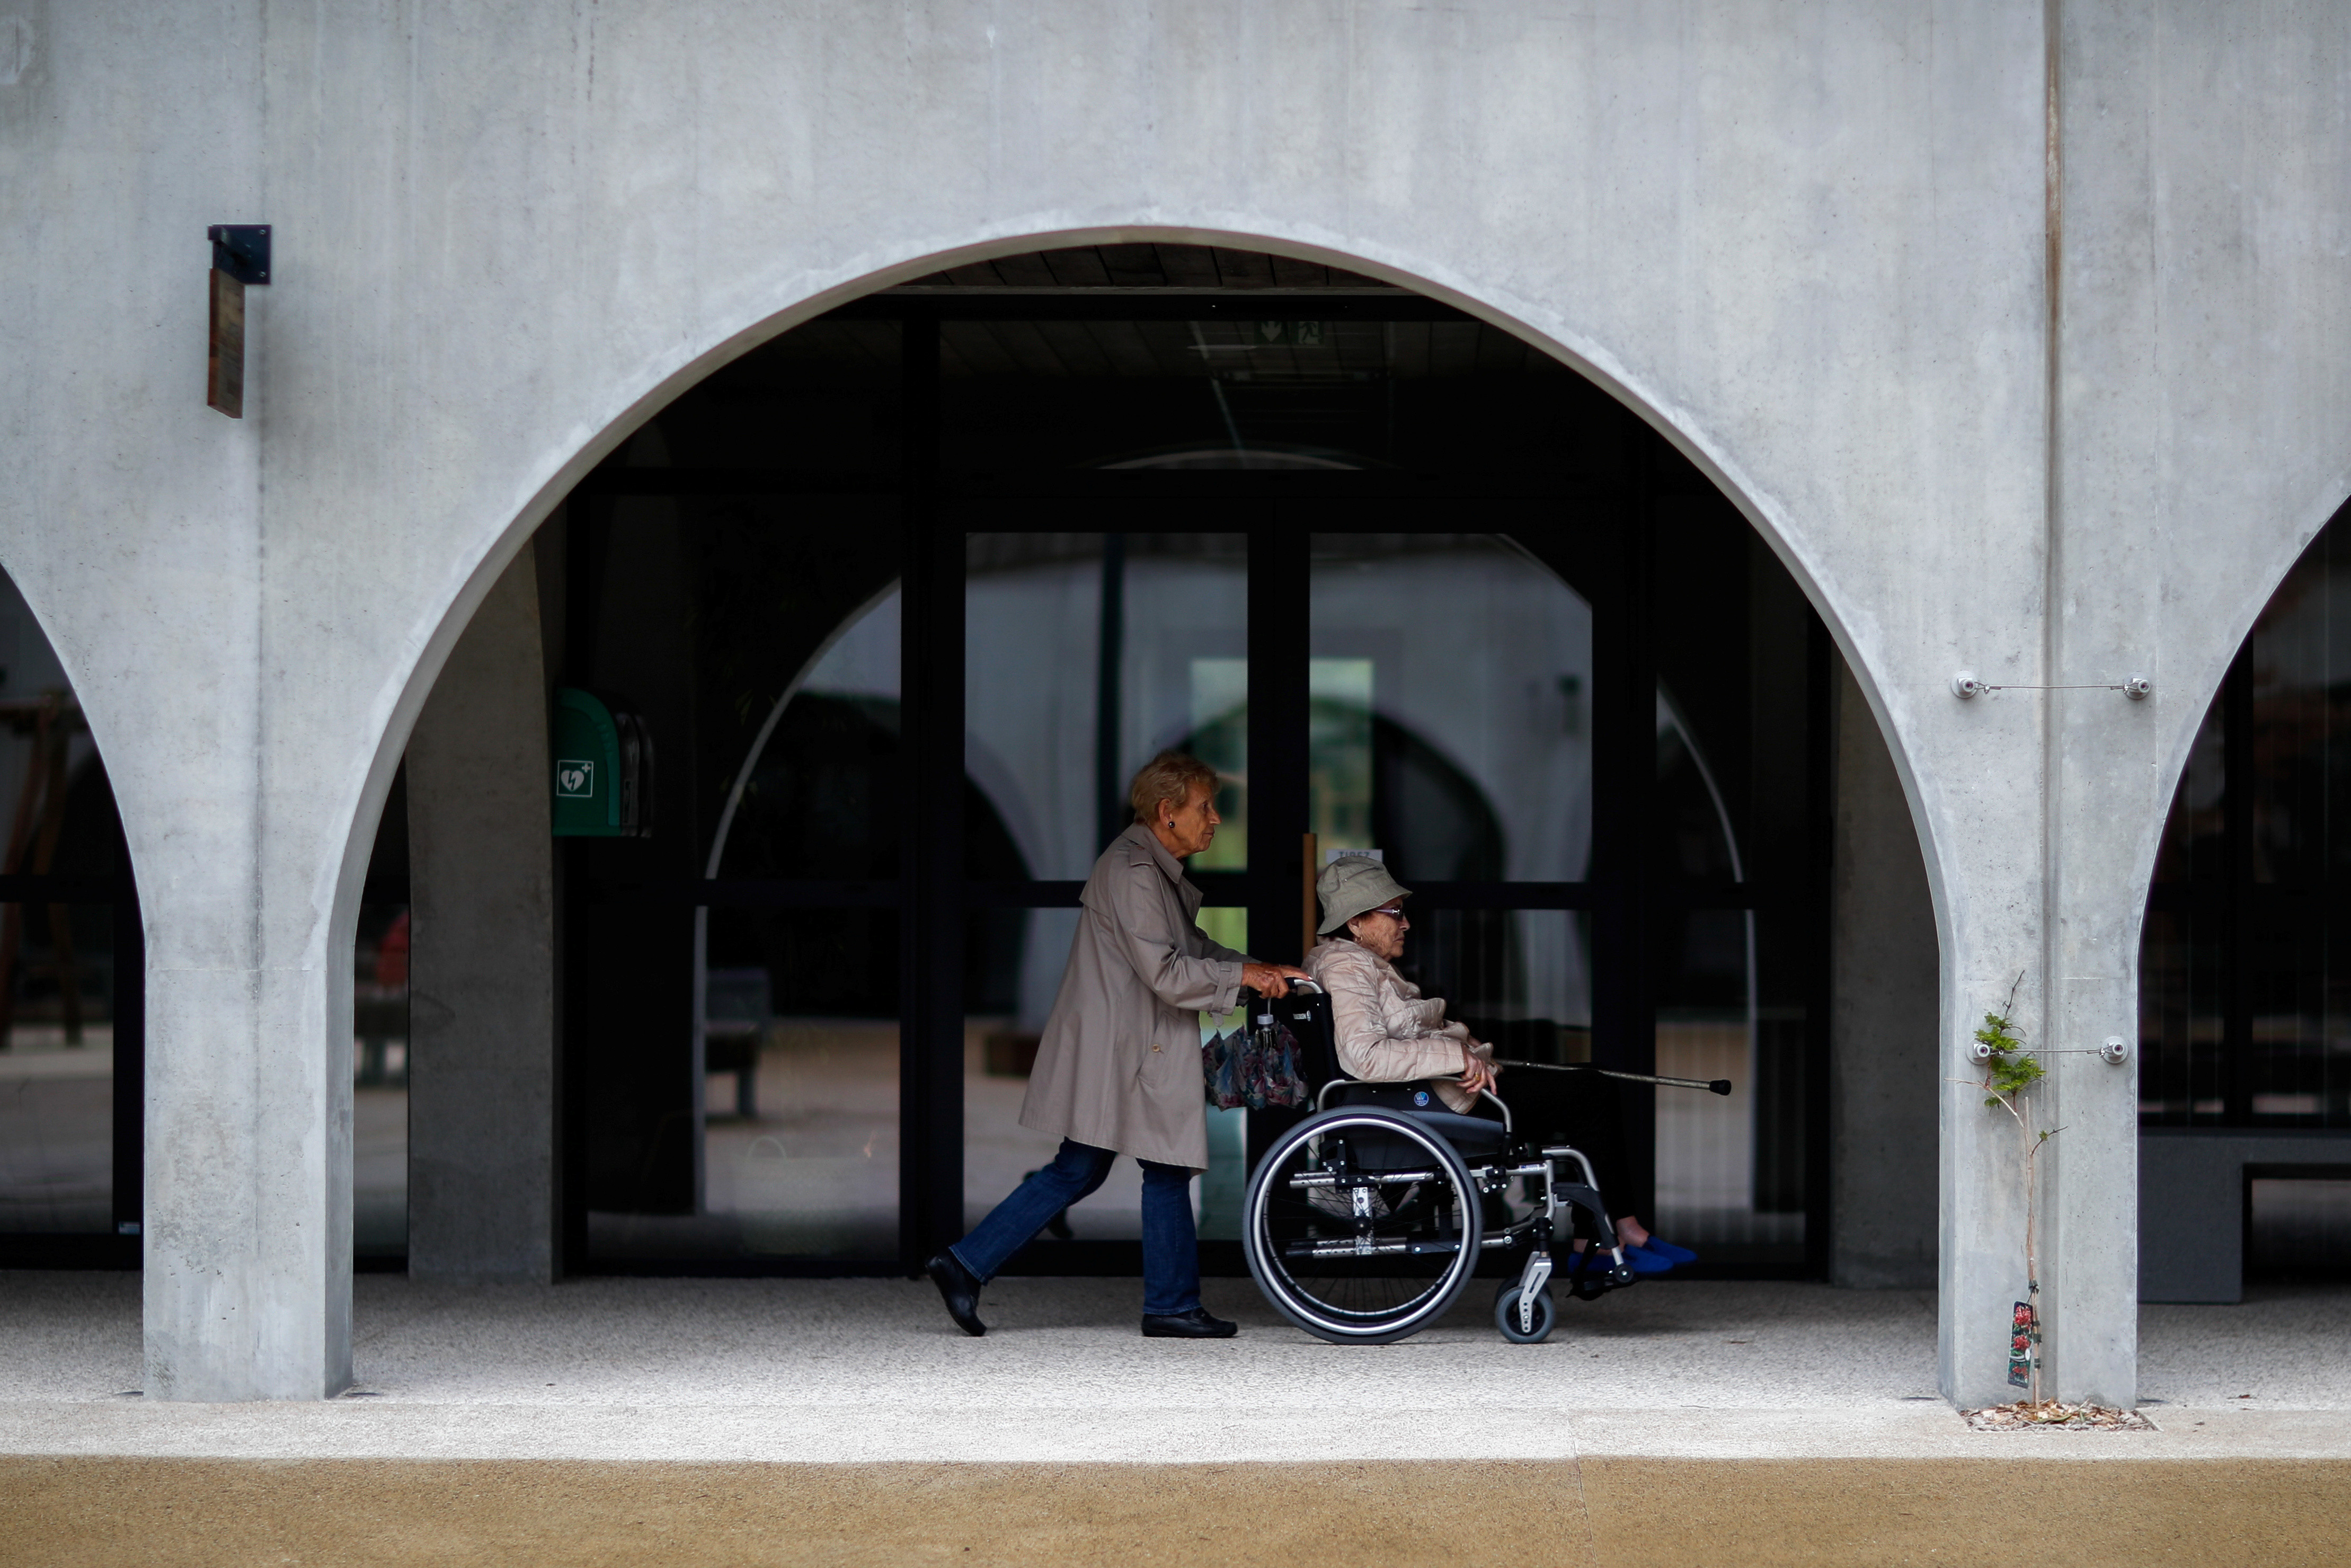 Alzheimer's patients Marie-Christiane pushes Jaqueline, 92, on her wheelchair during a walk at the Village Landais Alzheimer site in Dax, France, September 24, 2020. Picture taken on September 24, 2020. REUTERS/Gonzalo Fuentes - RC2K9J95H3ST